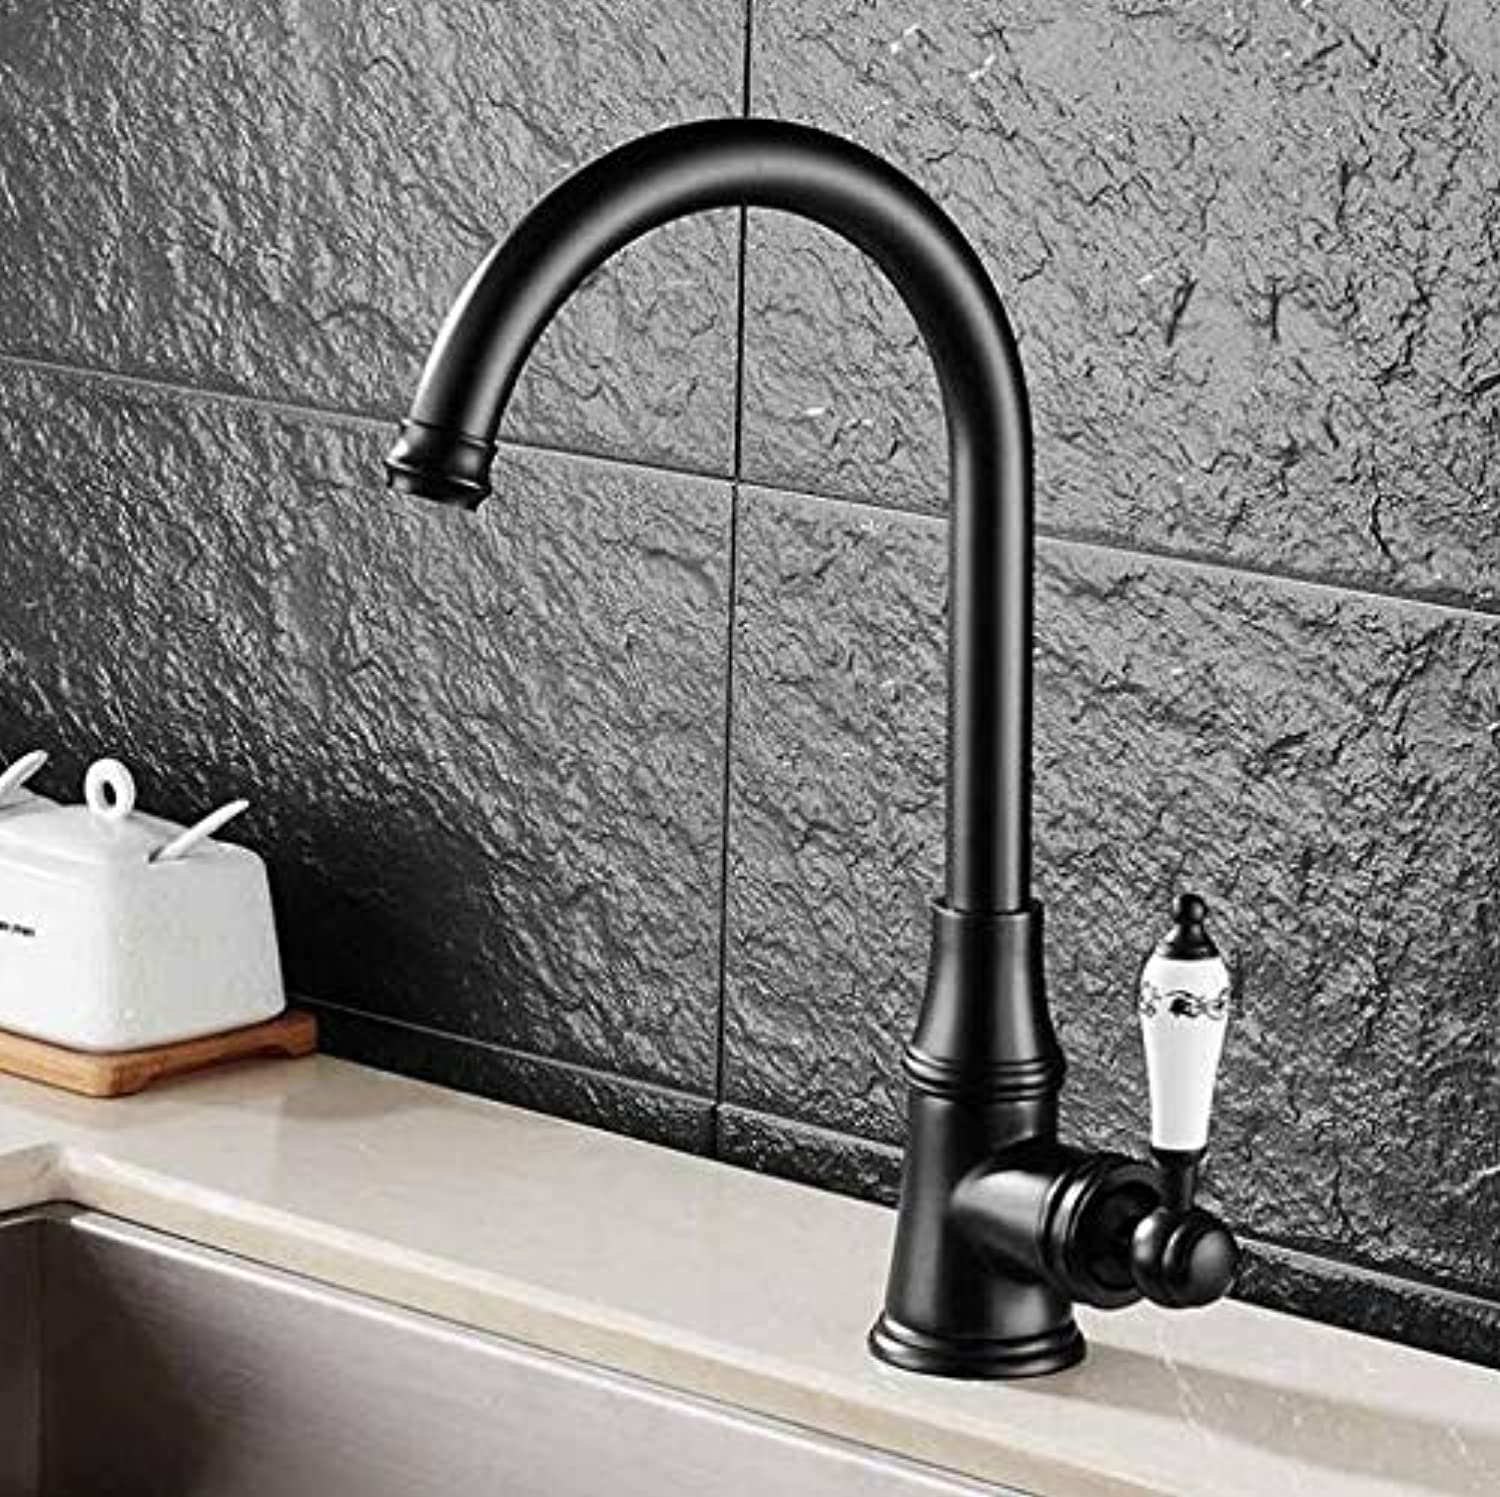 Mkkwp Kitchen Faucets Single Lever Faucet 360 redate Deck Mounted Kitchen Faucet Torneira Single Holder Single Hole Mixers Taps